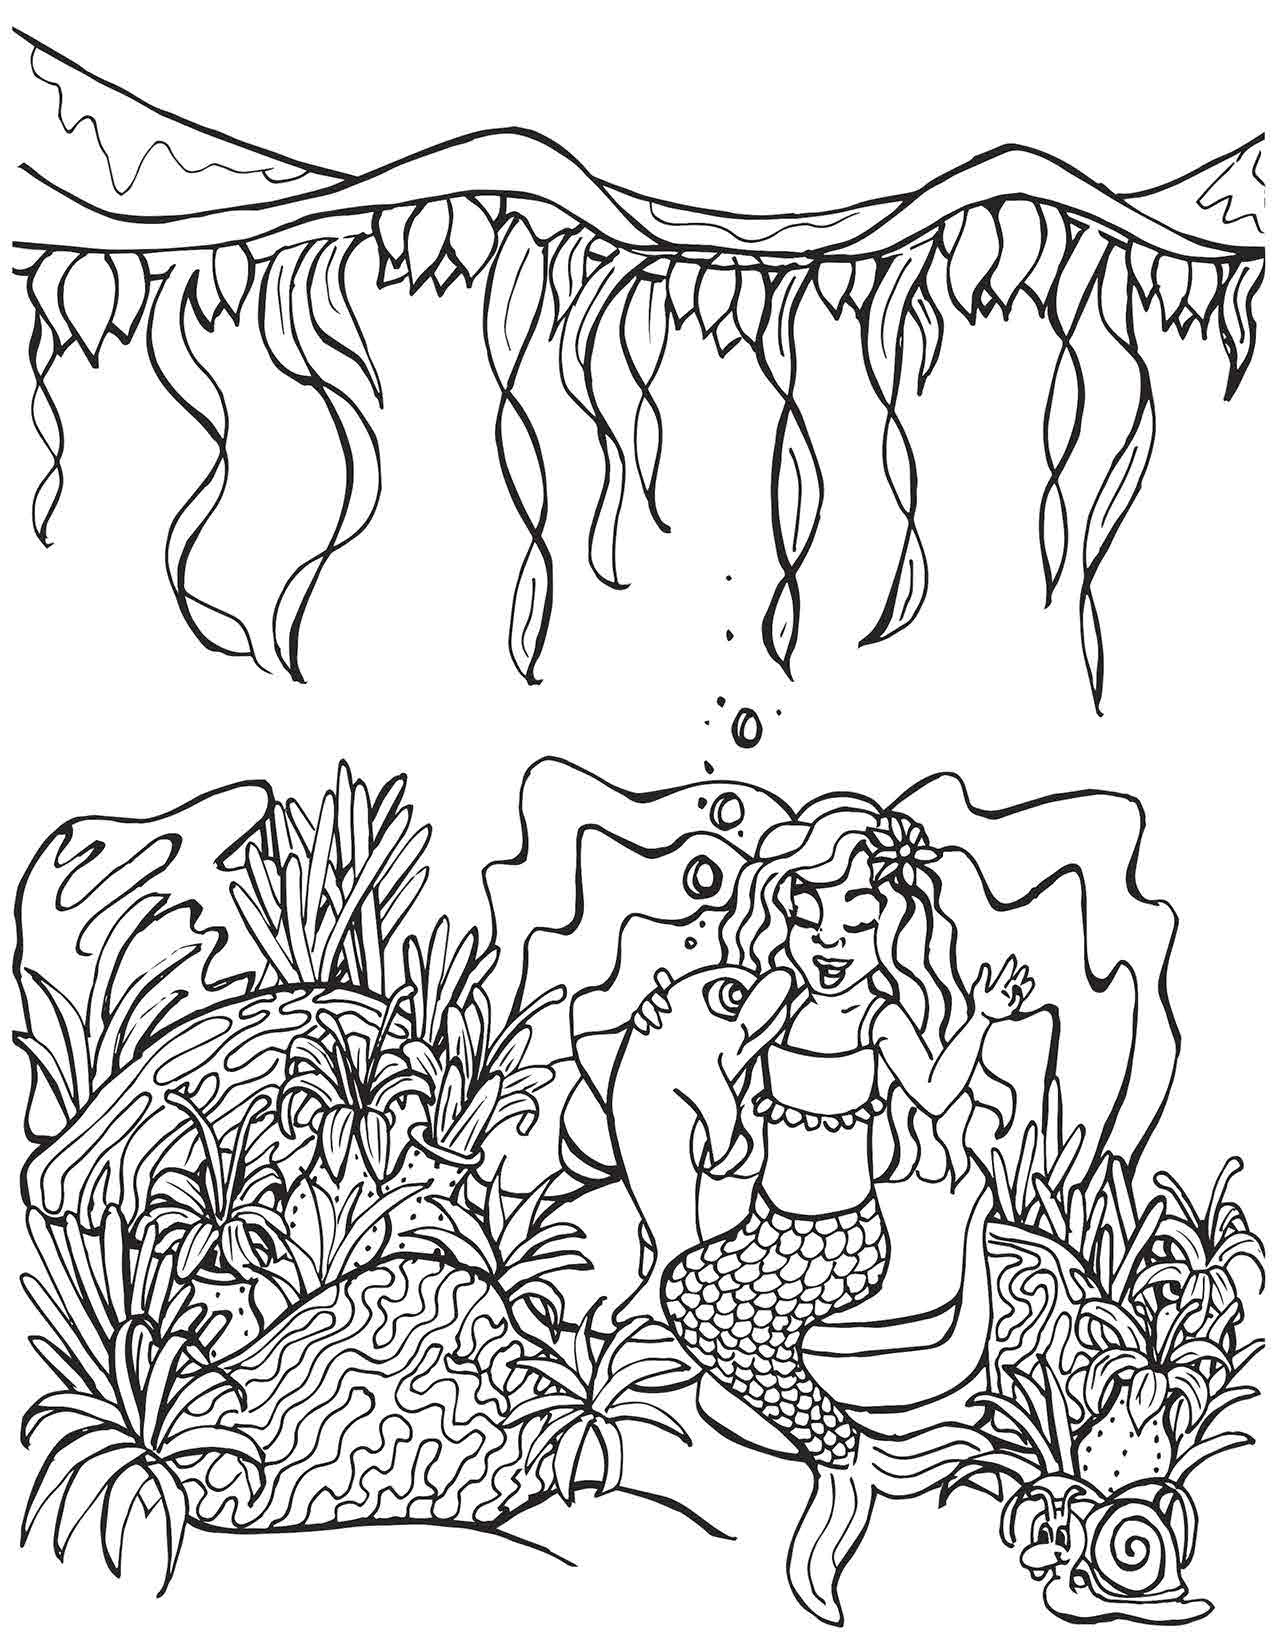 Mermaid Singing with Dolphin Under the Sea Surface Coloring Page